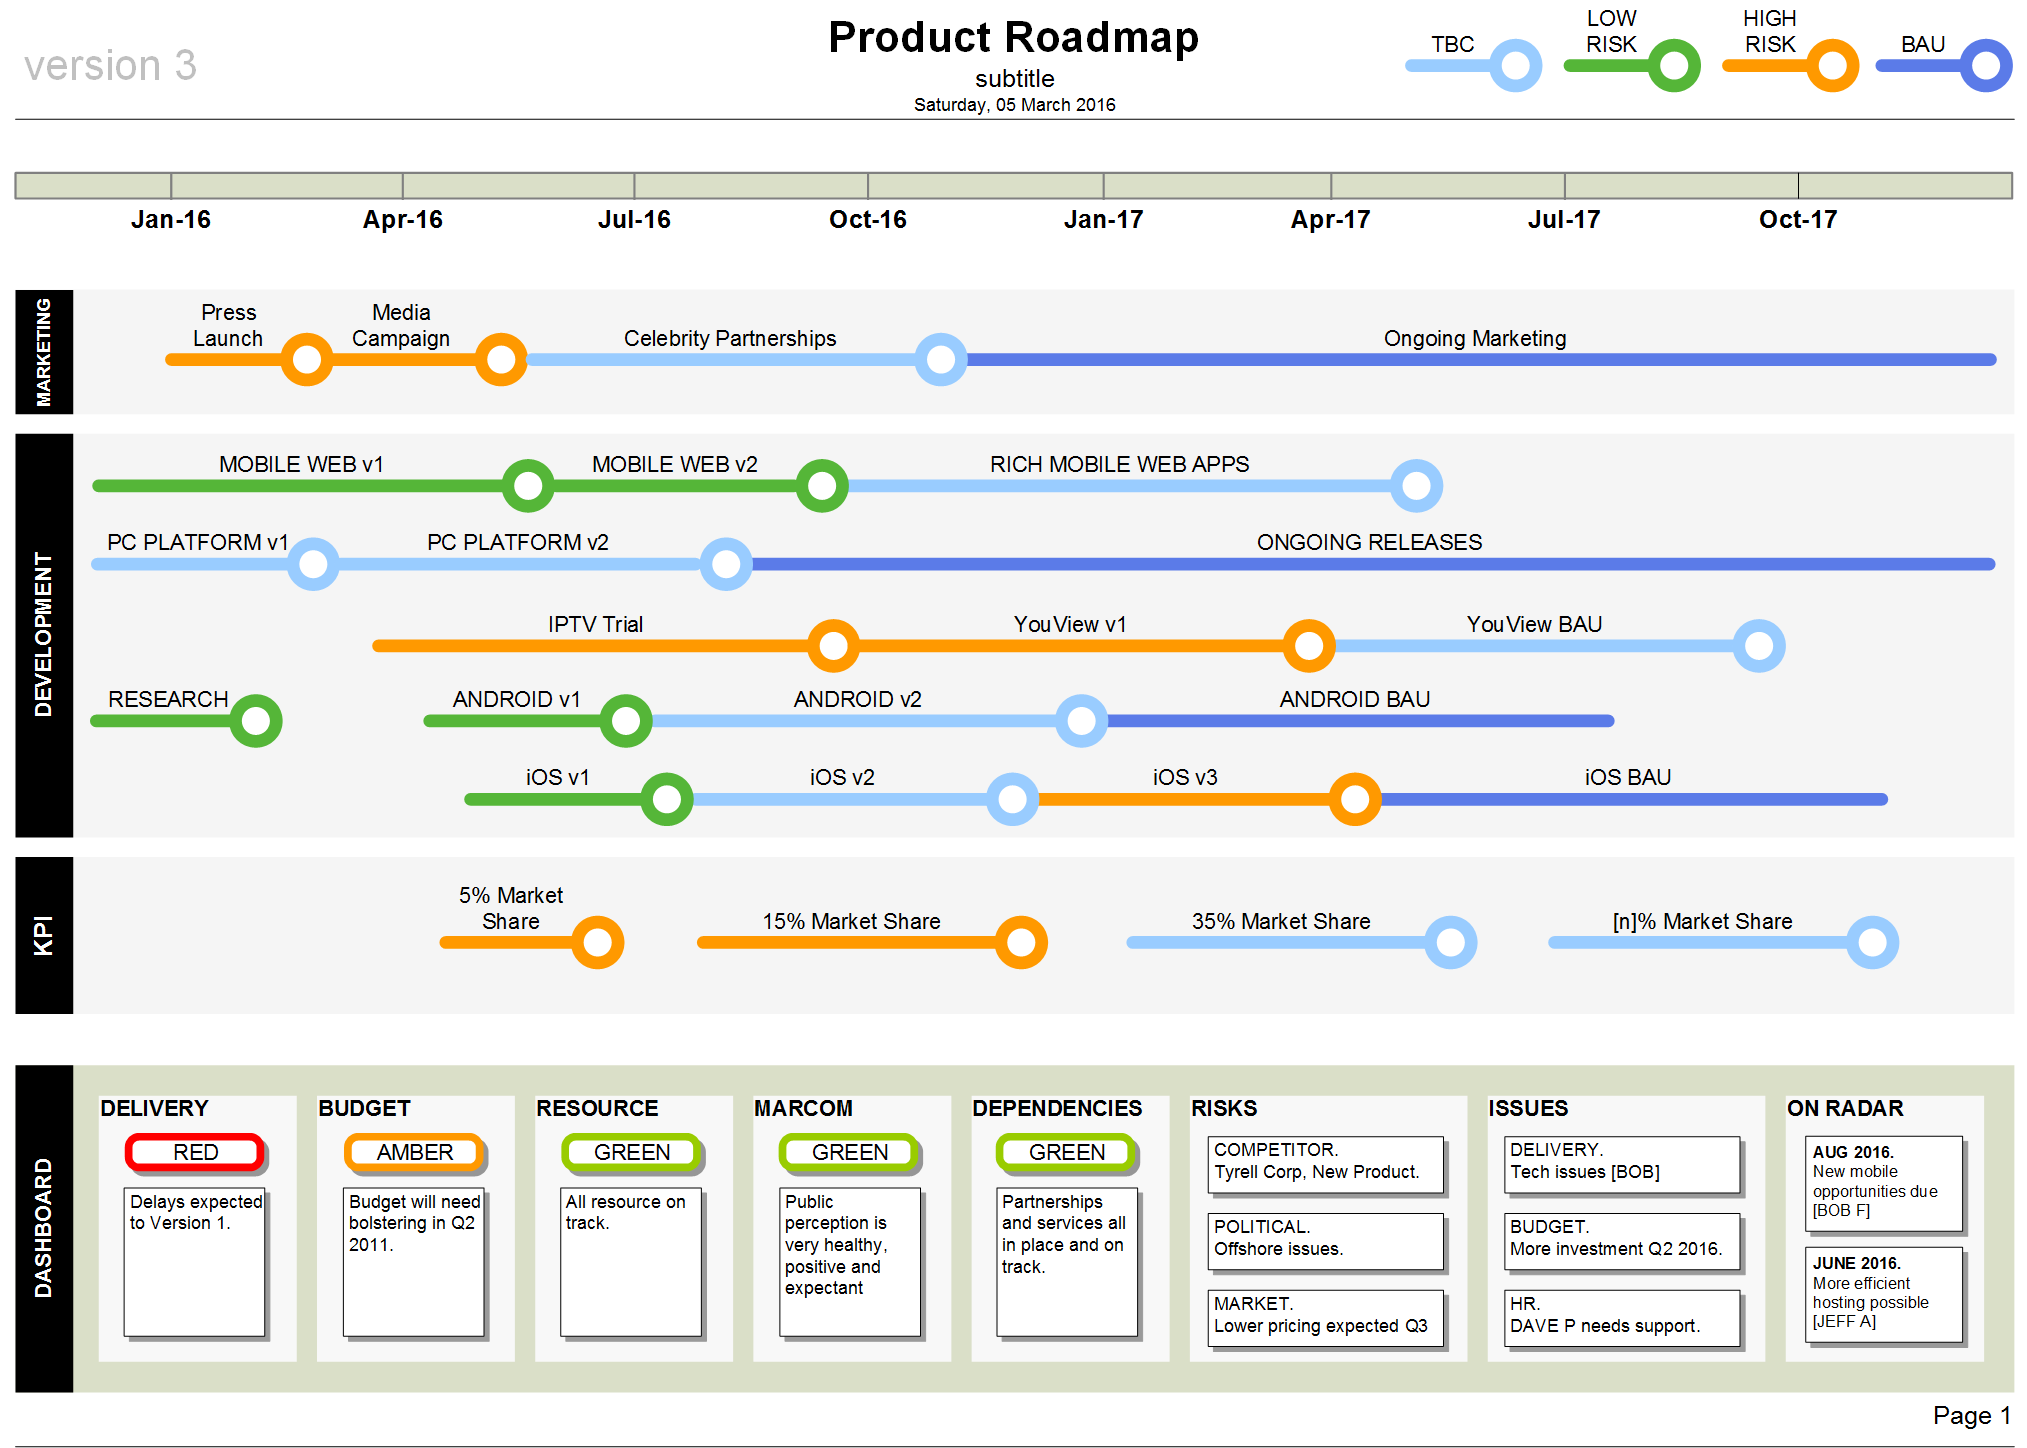 Product Roadmap Template Visio Project Management Pinterest - It roadmap template visio